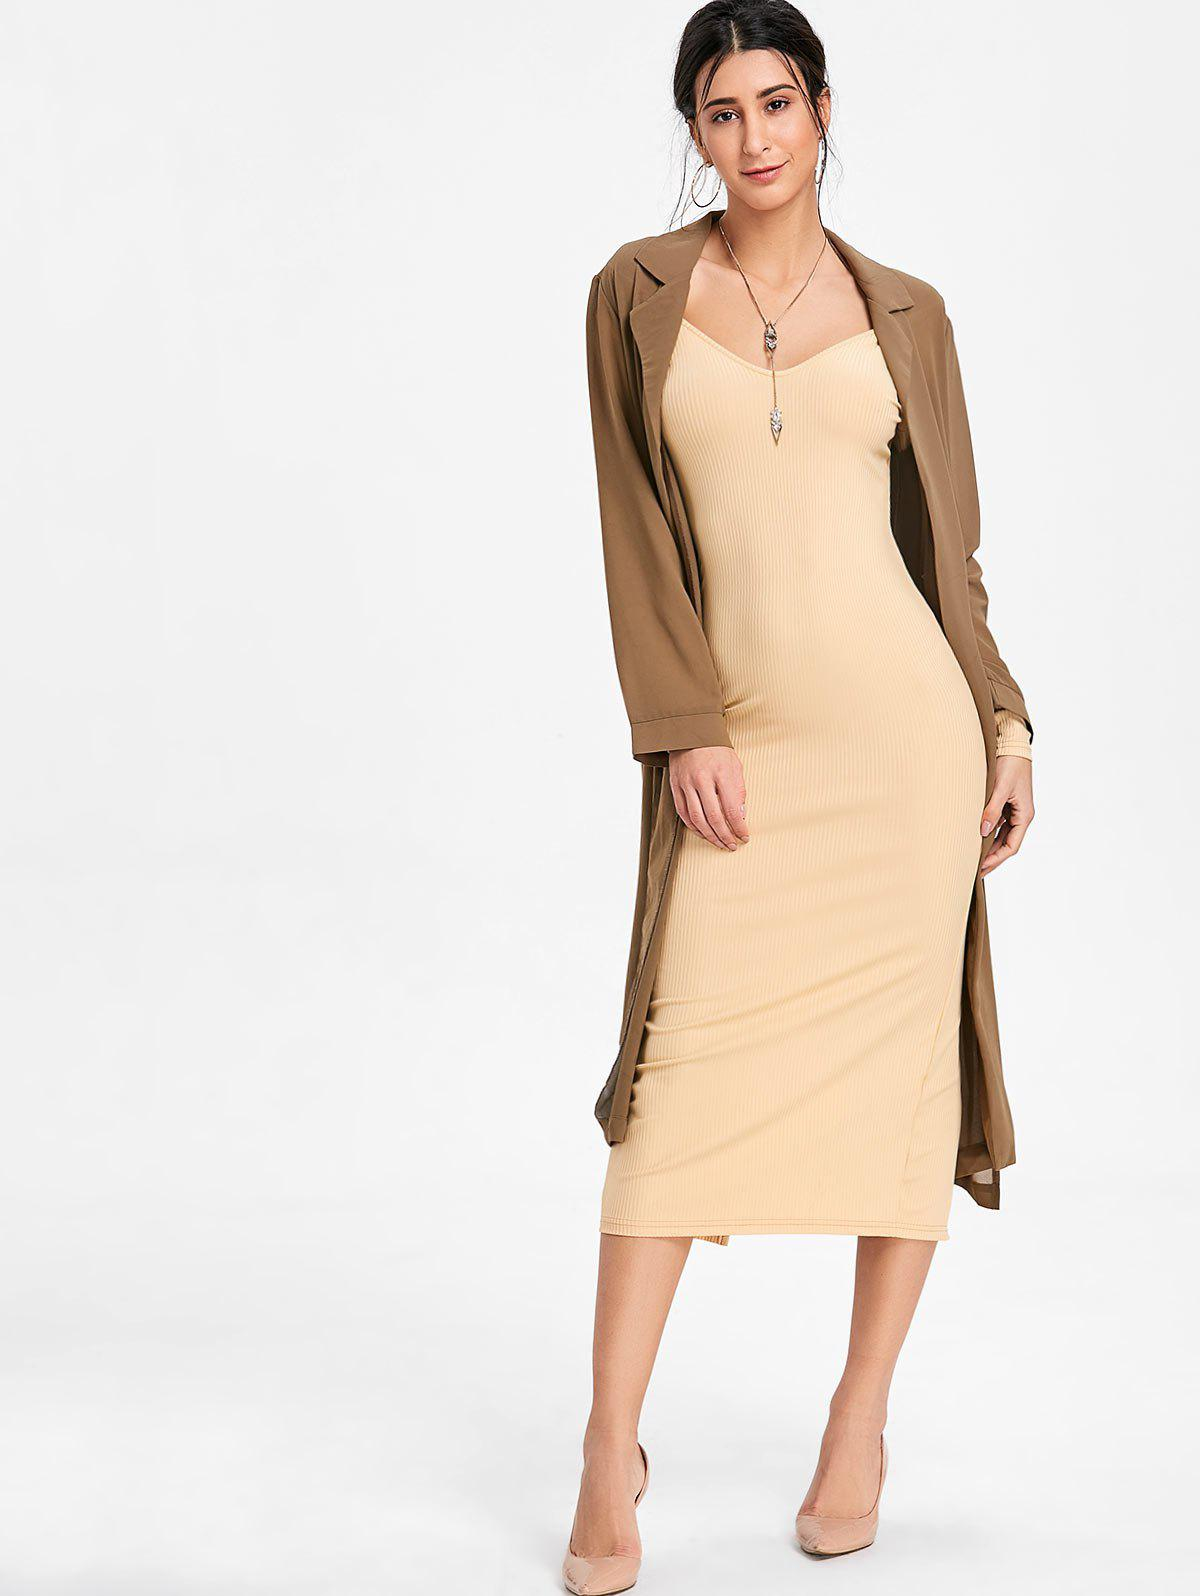 Open Shoulder Long Sleeve Ribbed Dress - BEIGE L